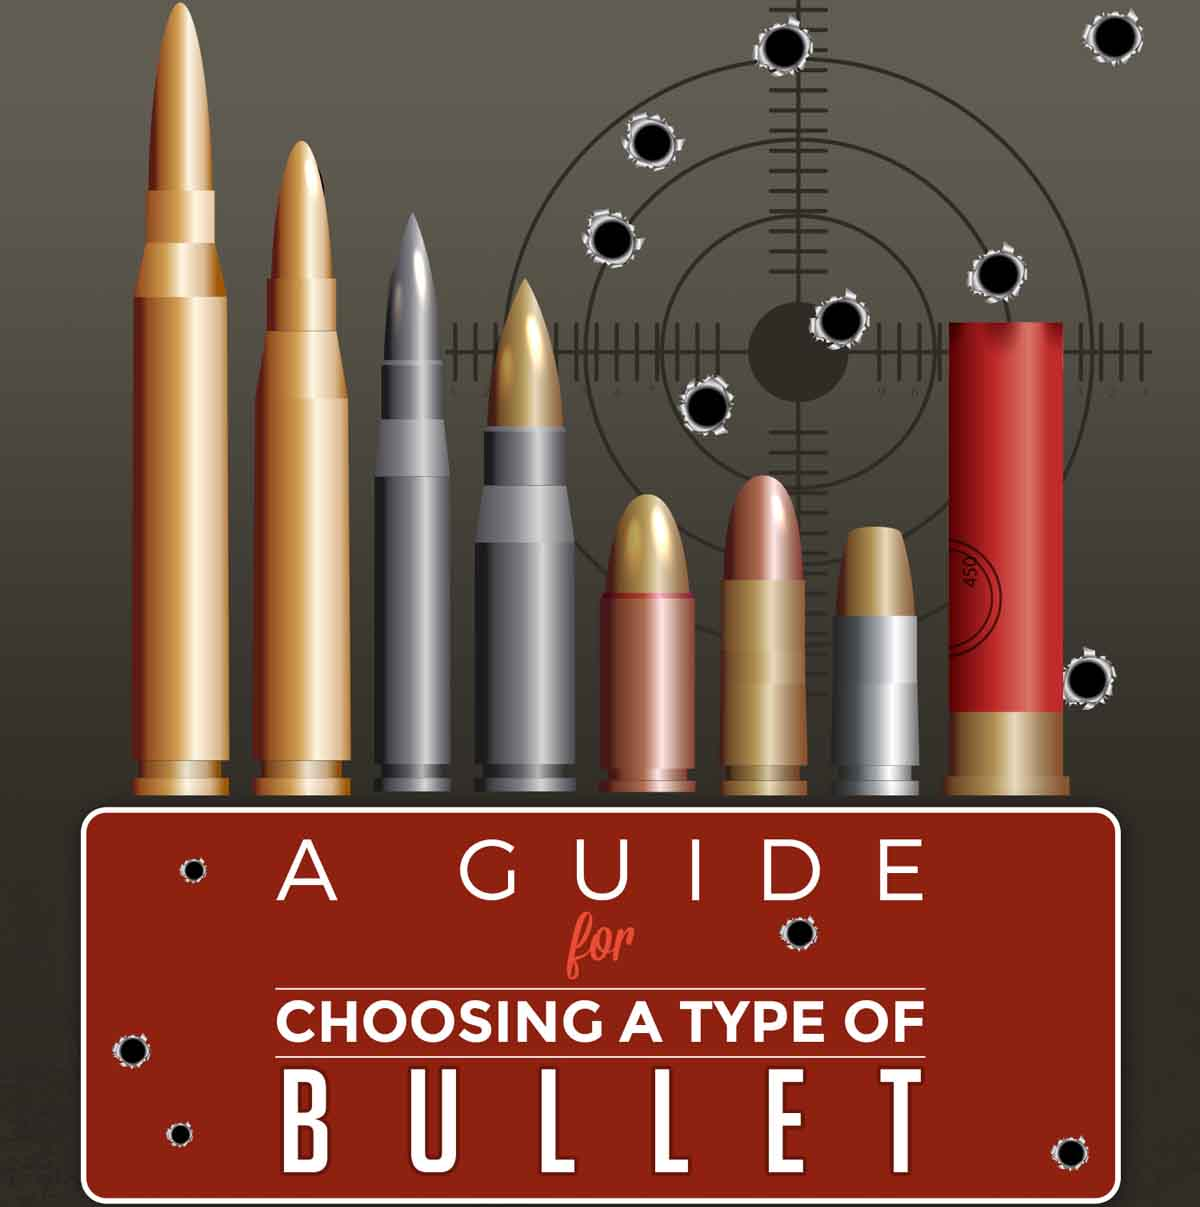 A Guide for Choosing a Type of Bullet